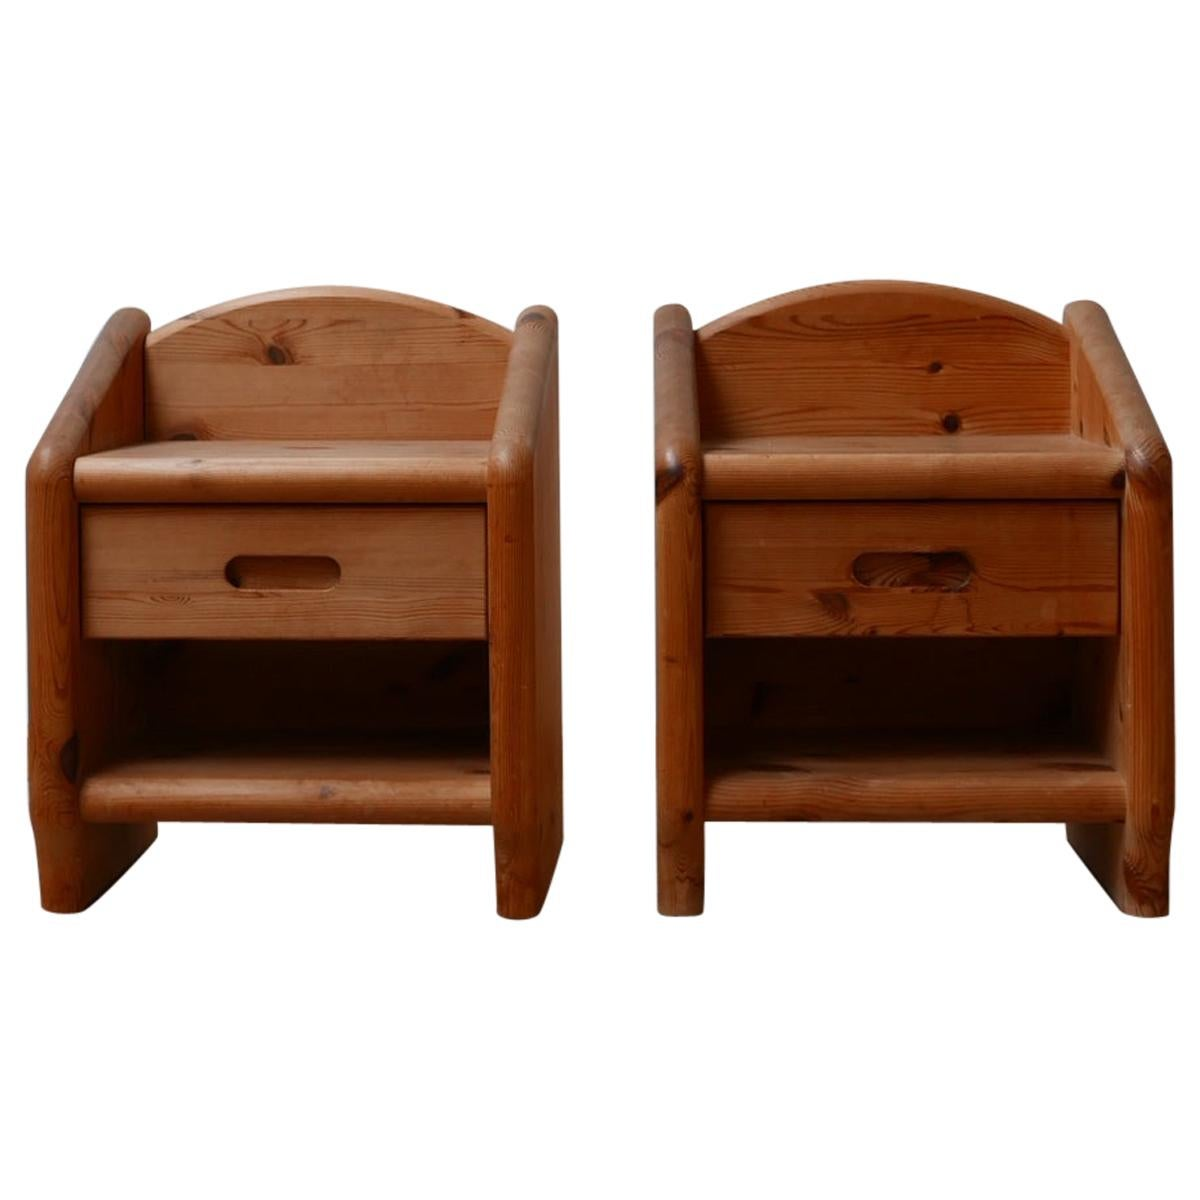 Pine Midcentury Bedside Tables